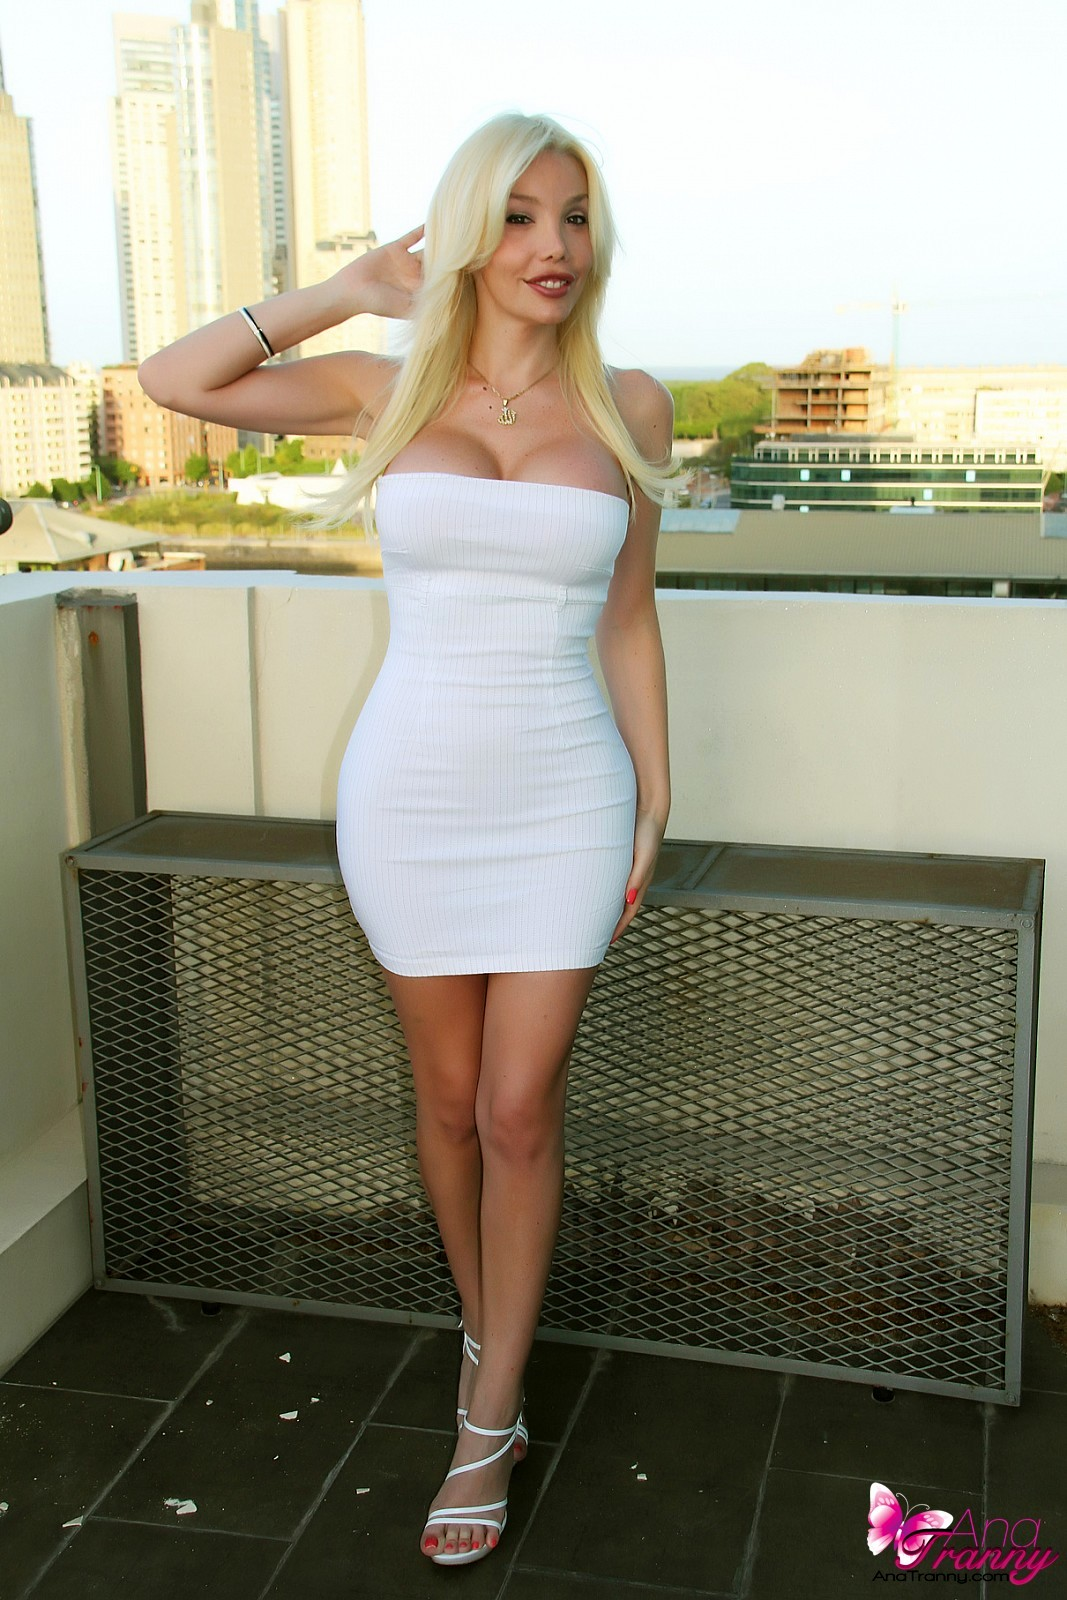 Flirtatious T-Girl Ana Mancini In Unbelievable Tight Dress